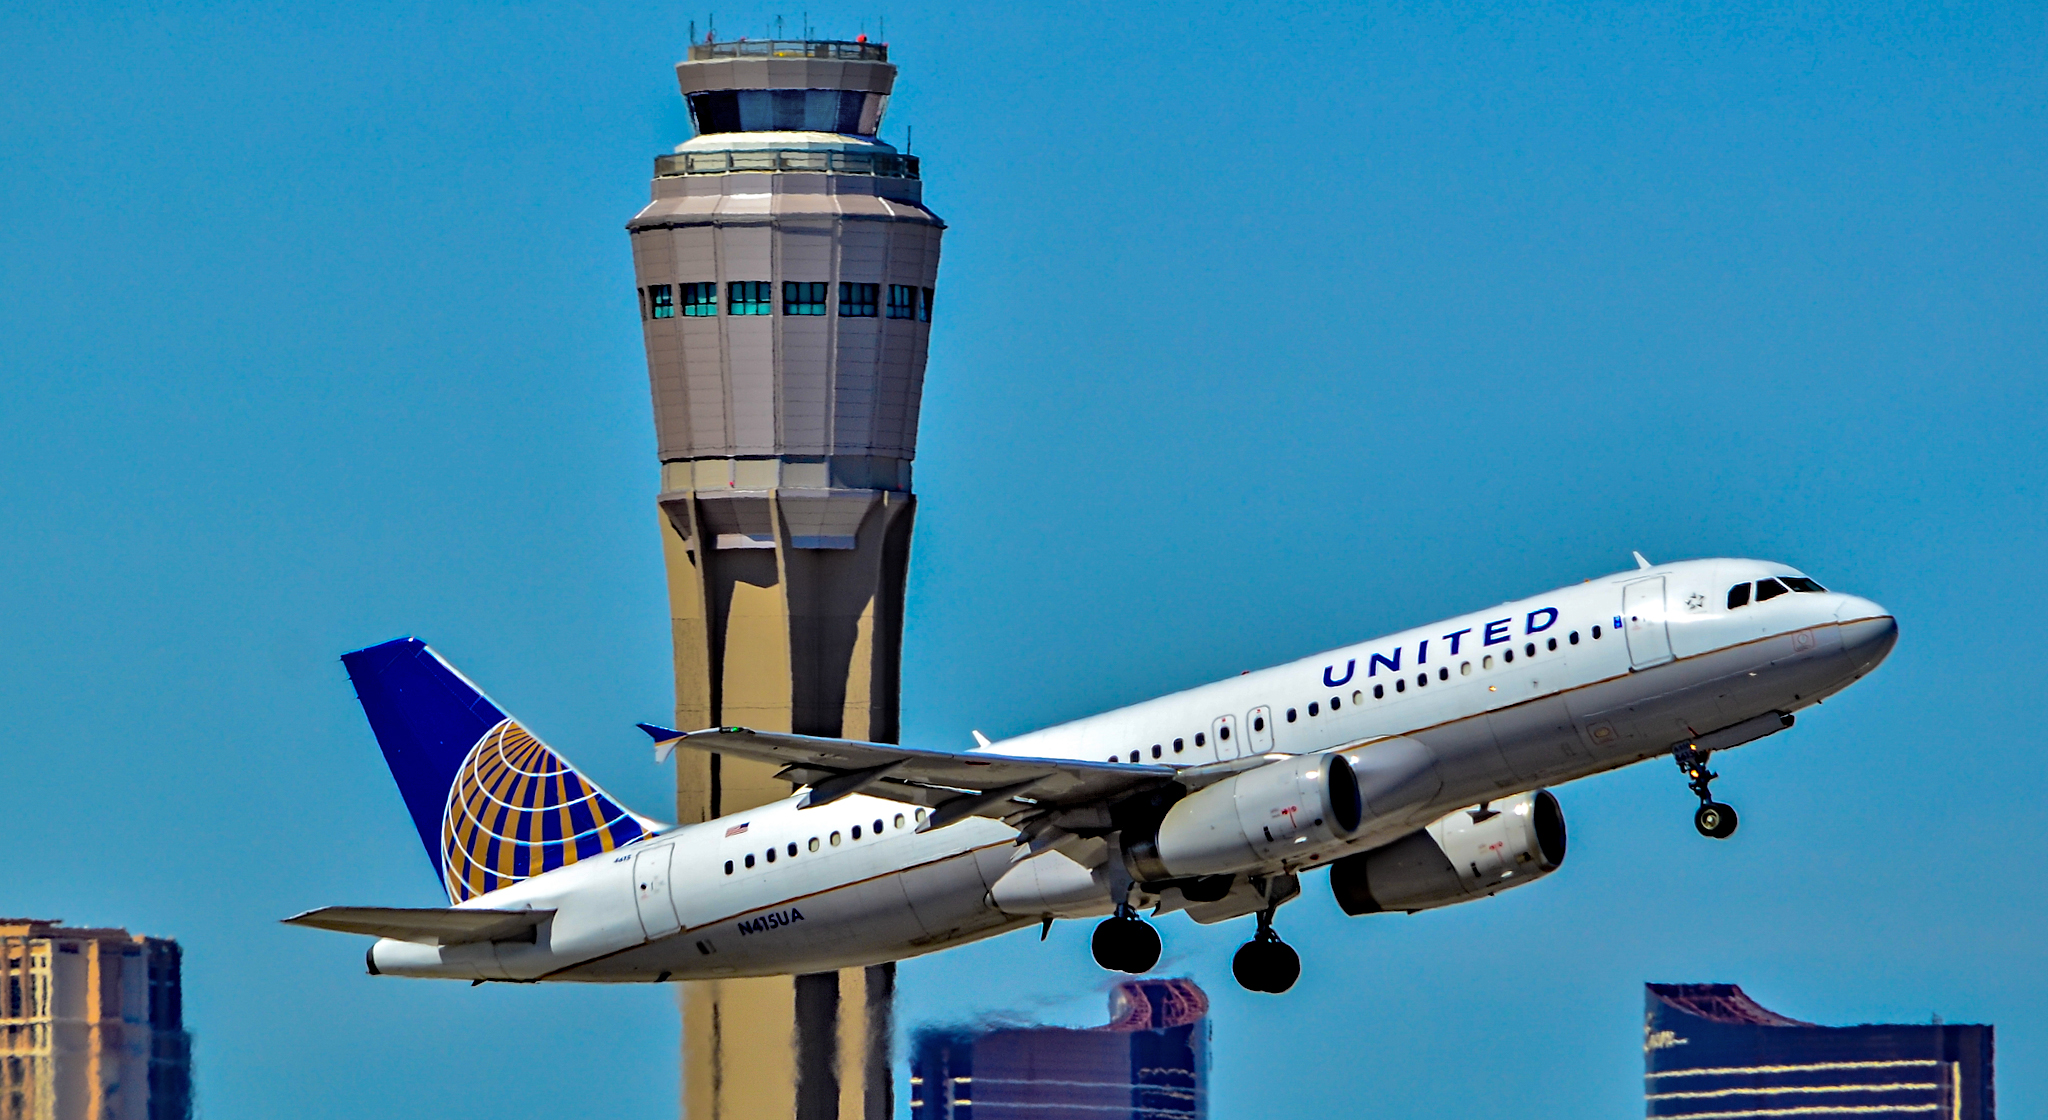 United Airlines jet taking off